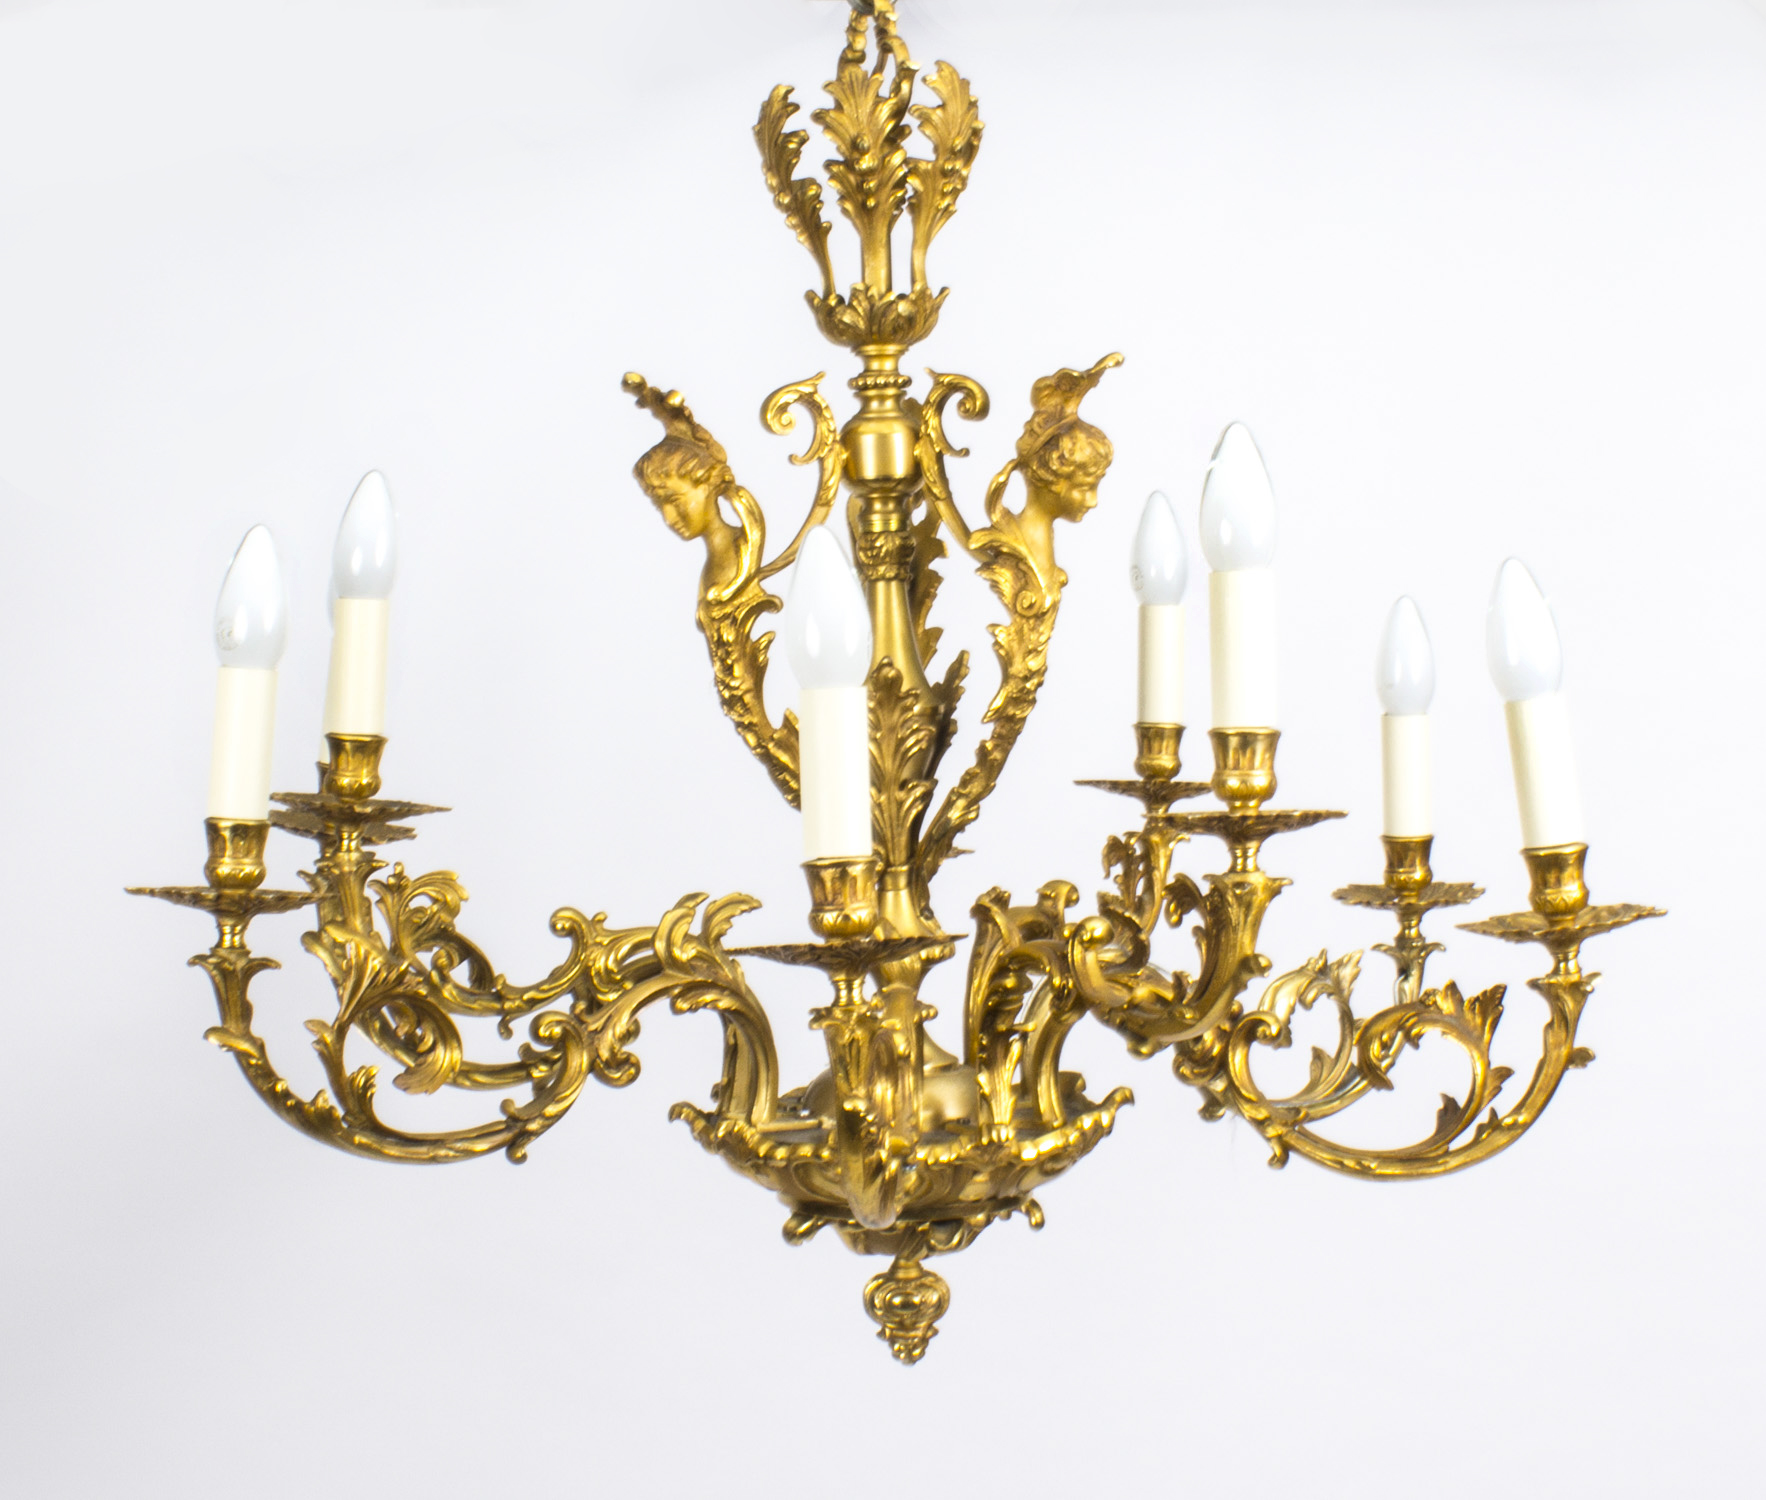 Antique French Louis Xiv Style Nine Branch Ormolu Chandelier 19th Century Ref No 08253